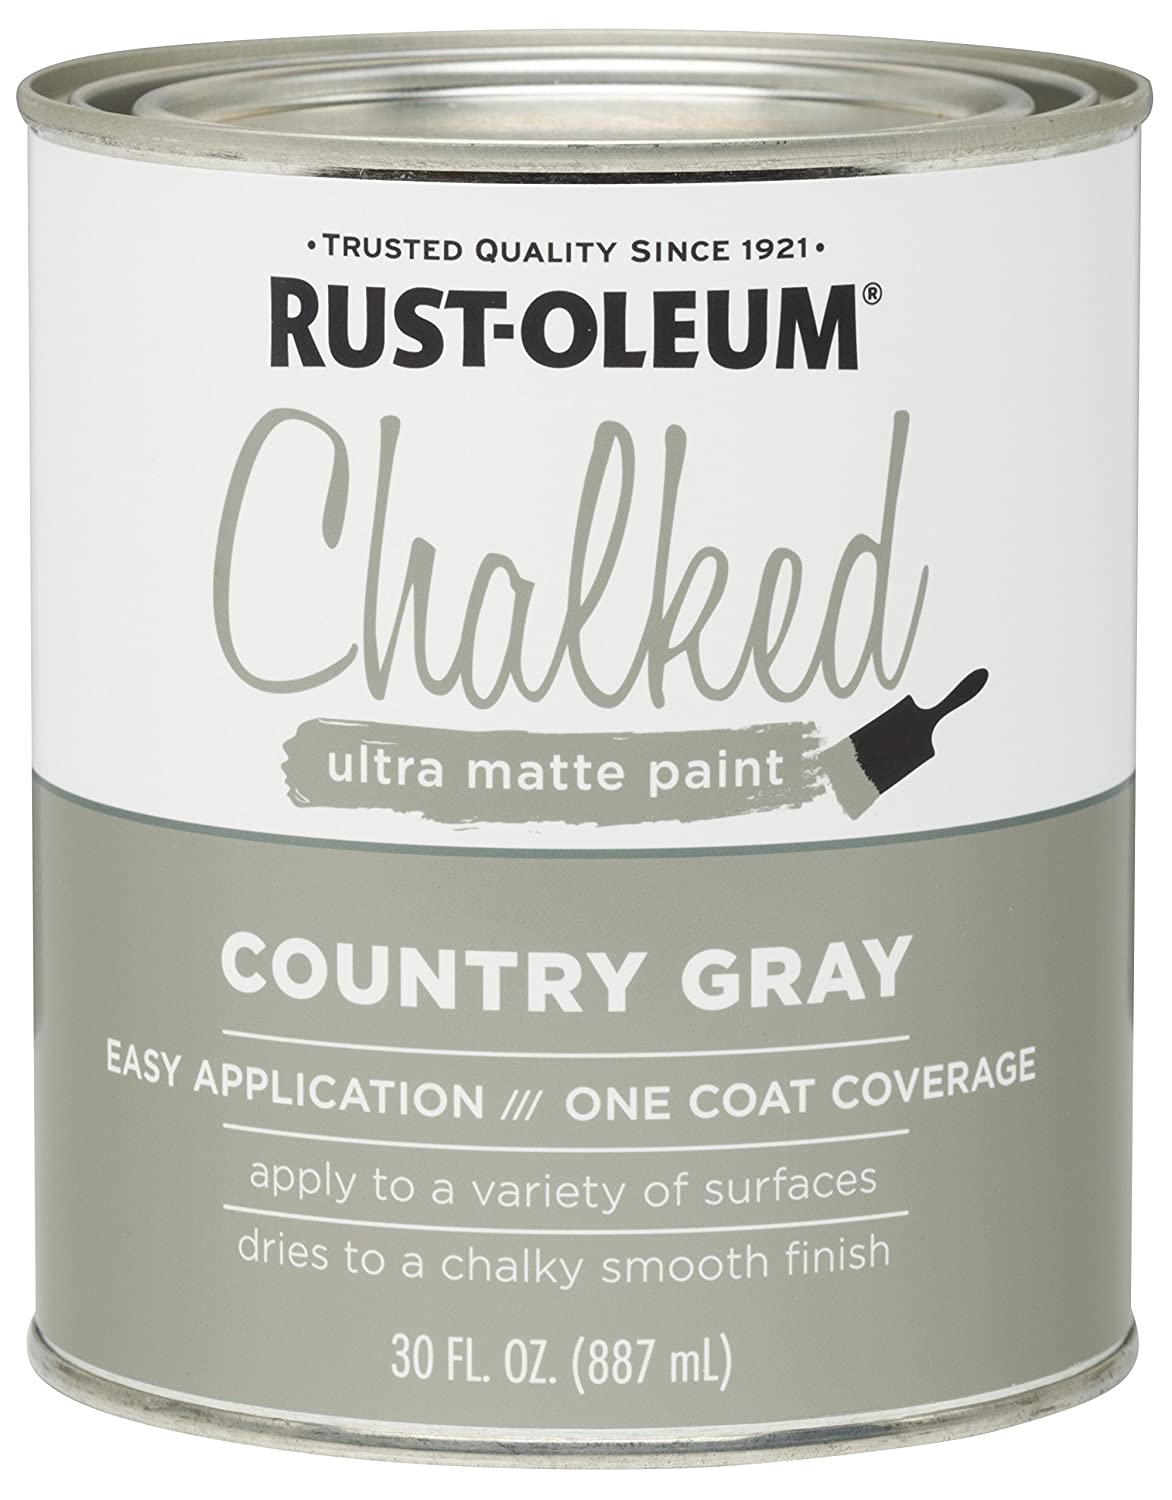 Rust-Oleum 285141 Ultra Matte Interior Chalked Paint 30 oz,Country Gray